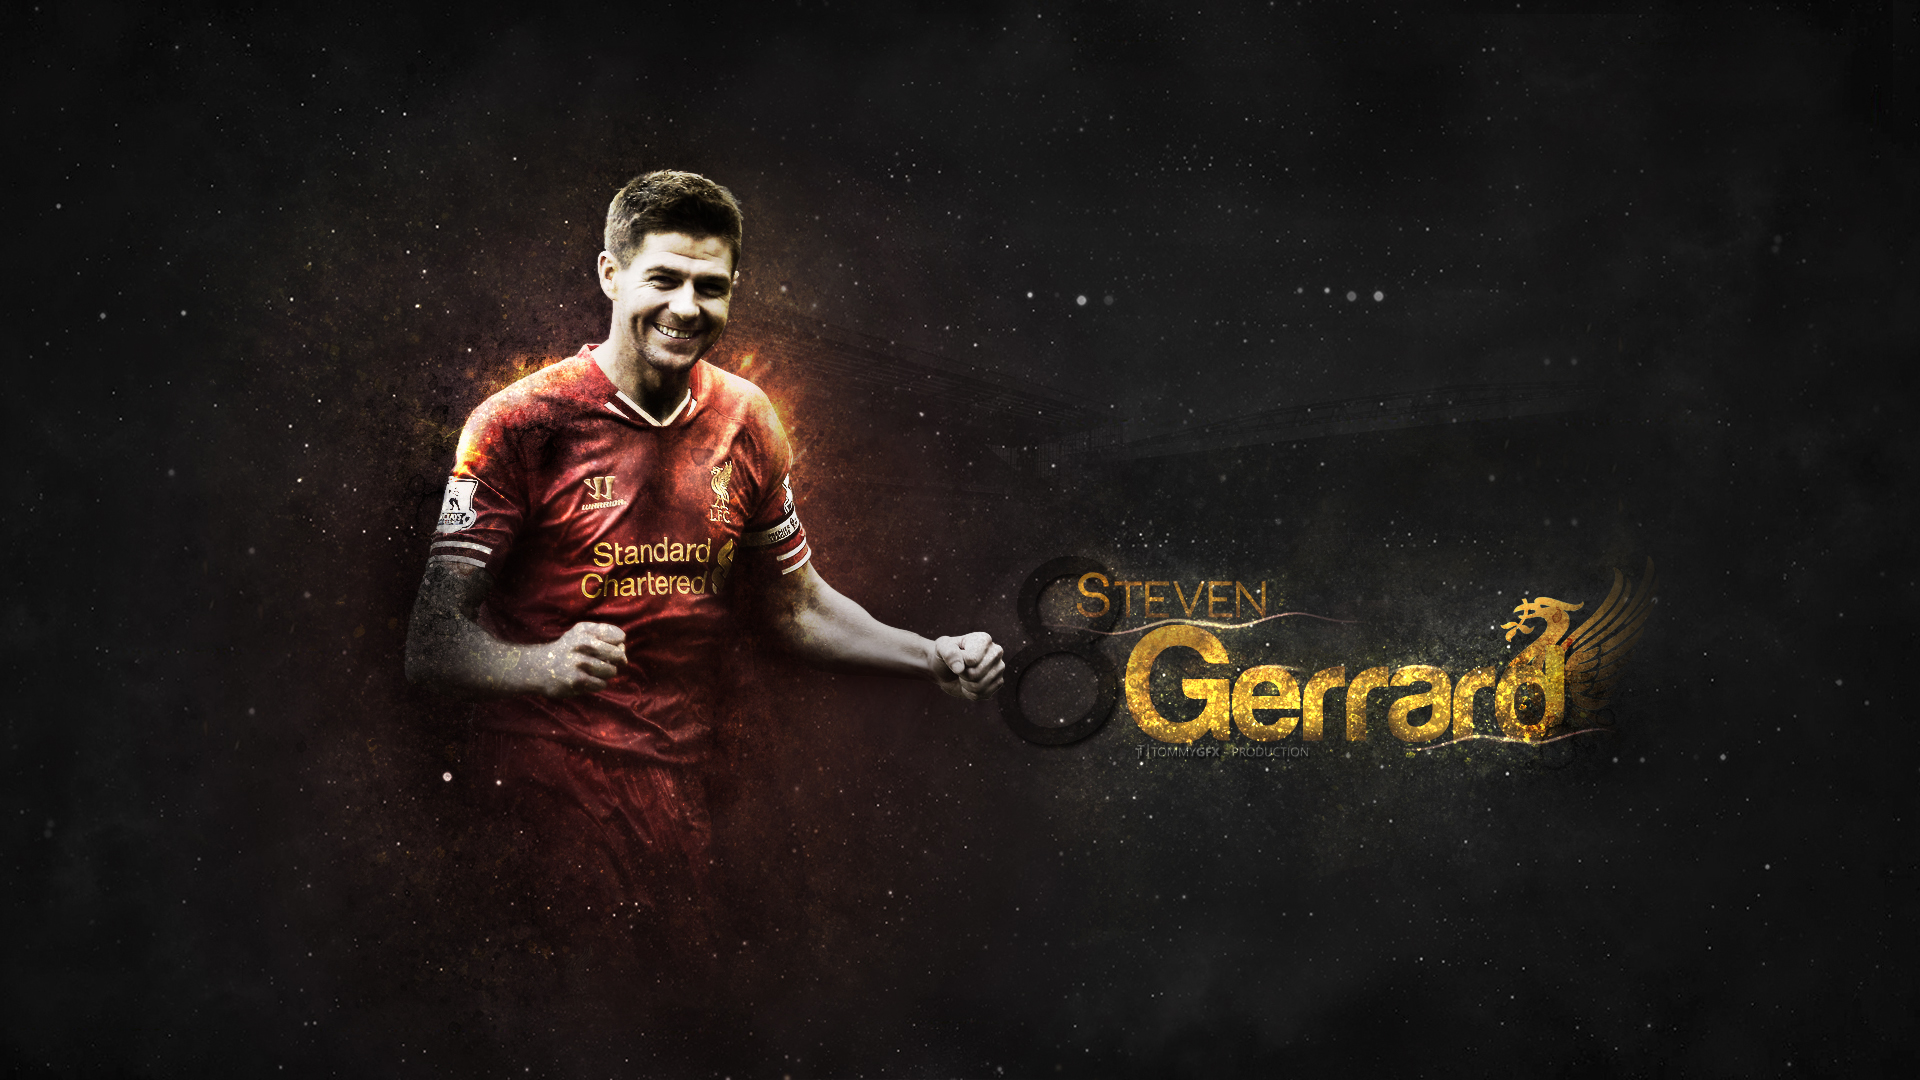 Steven Gerrard HD Football Wallpapers 1920x1080